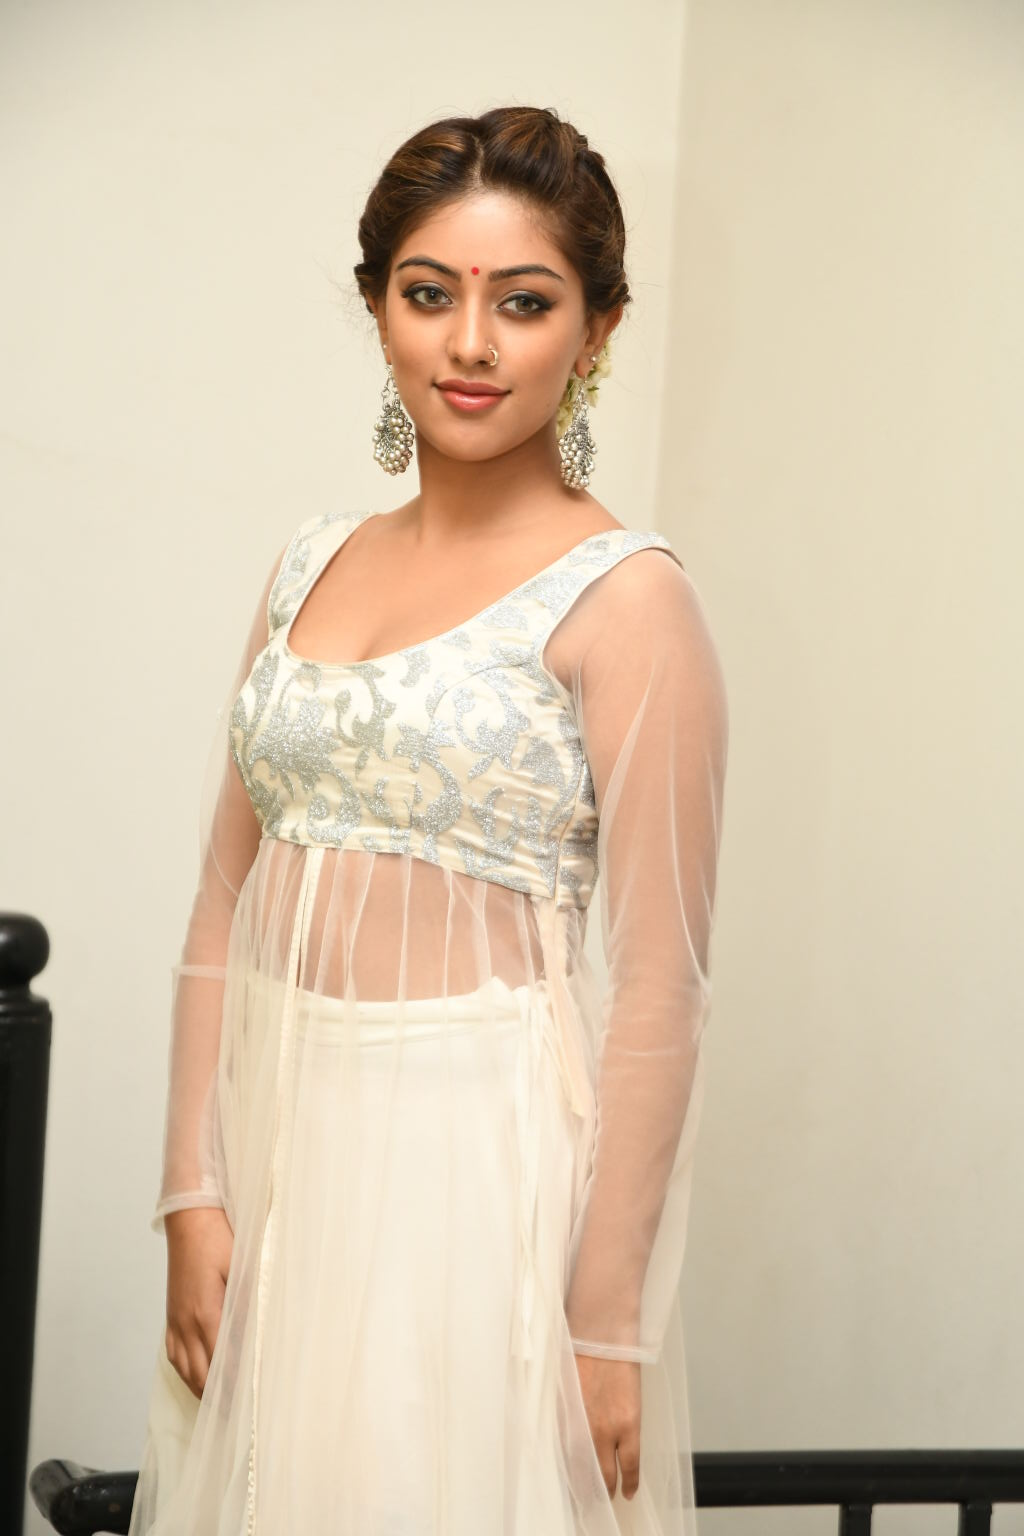 unnadu jagratha movie actress anu emmanuel hot photos 2017 c65 in